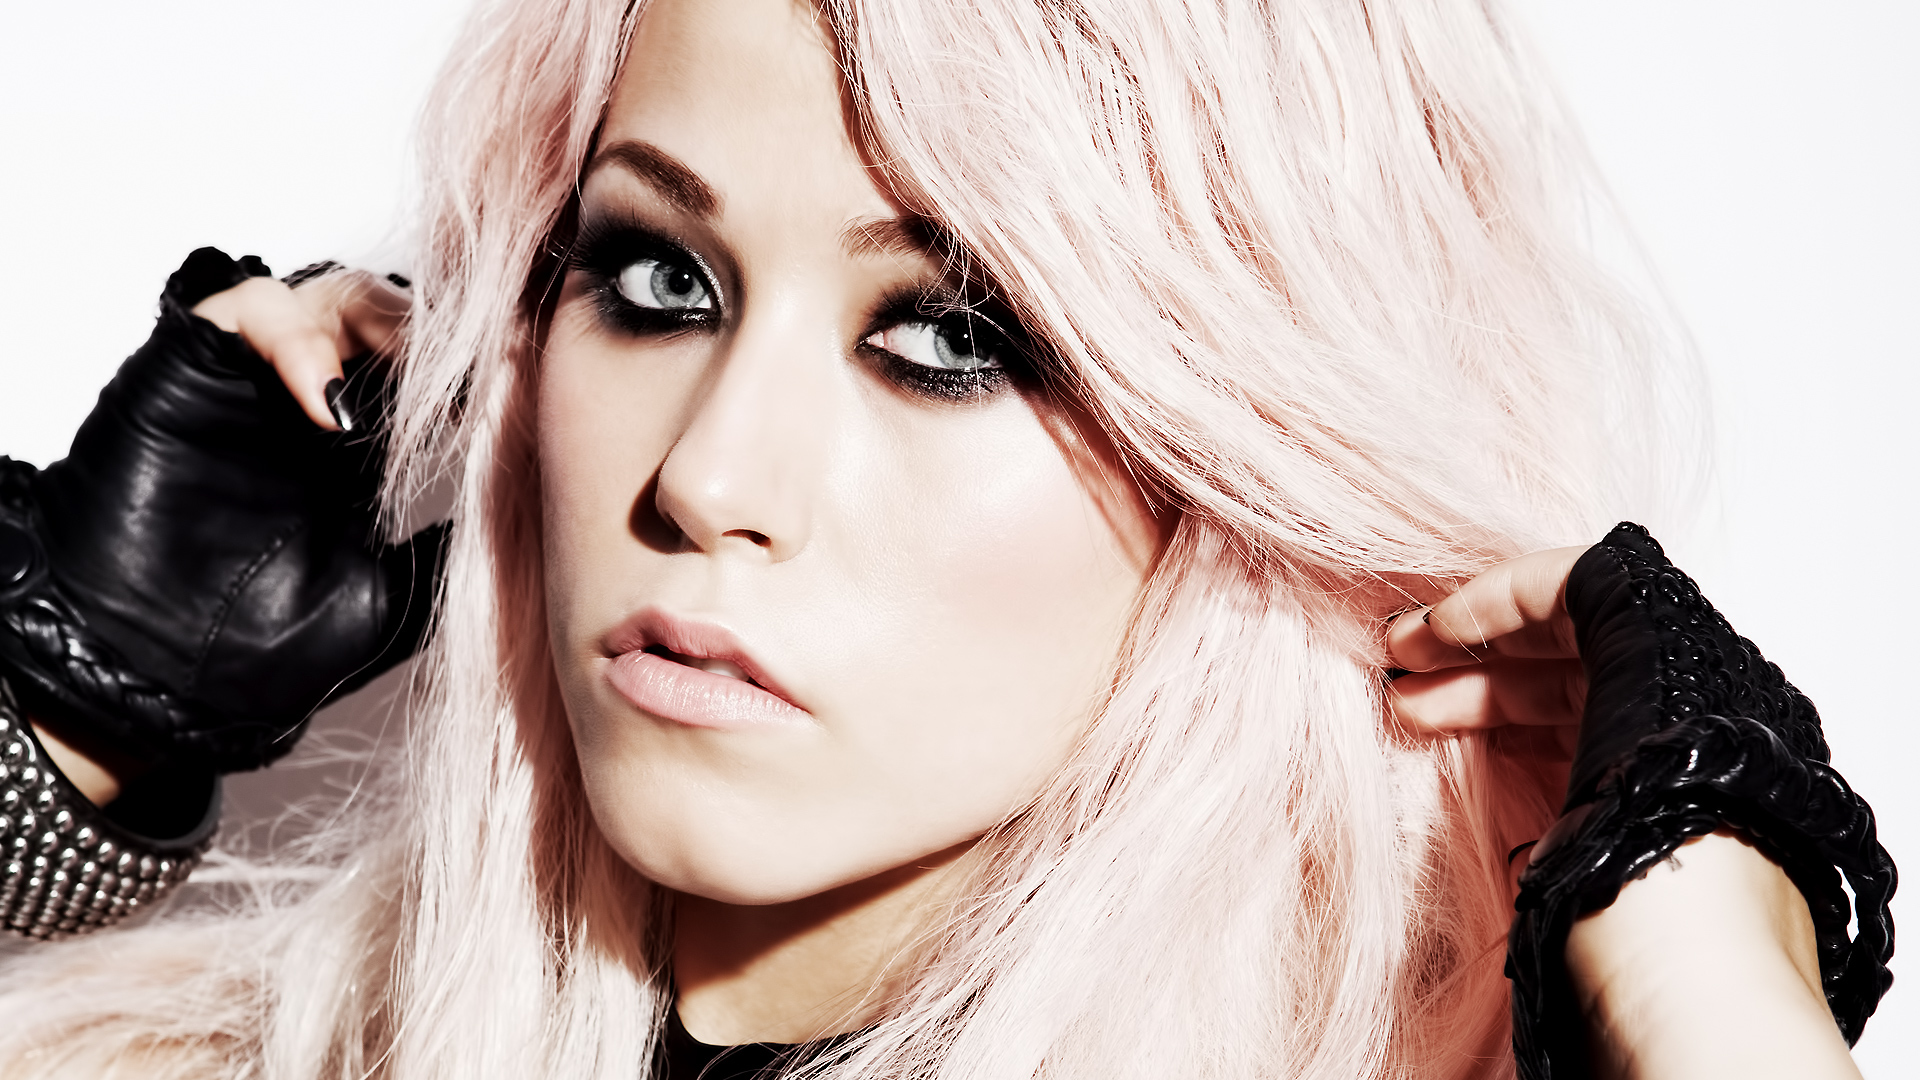 Pictures Of Amelia Lily